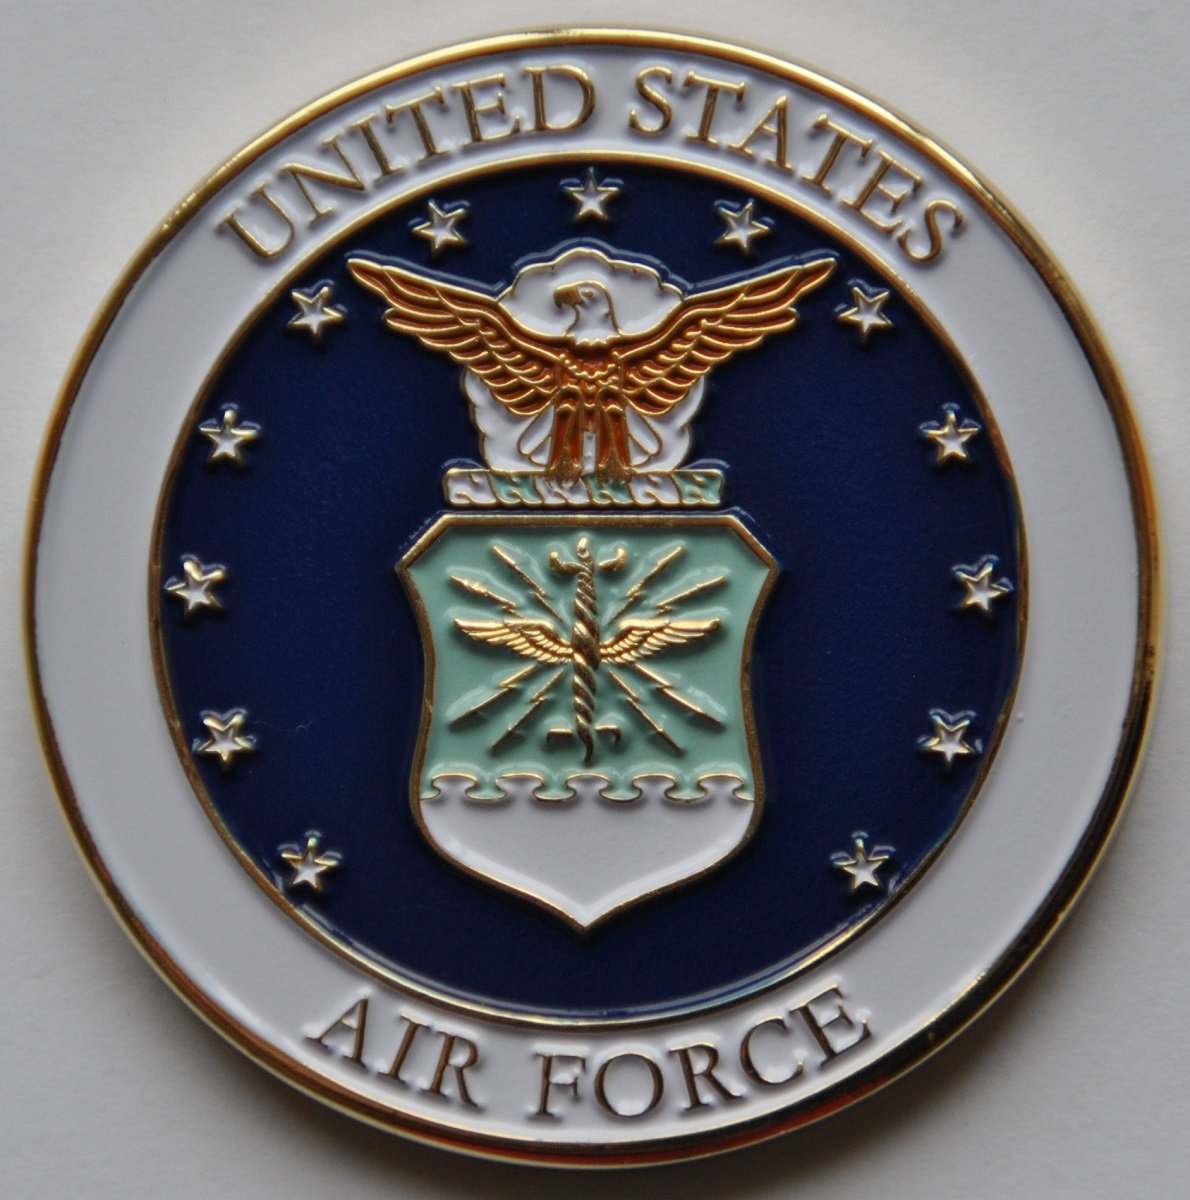 Kadena Air Base Challenge Coin by Challenge Coin (Image #1)